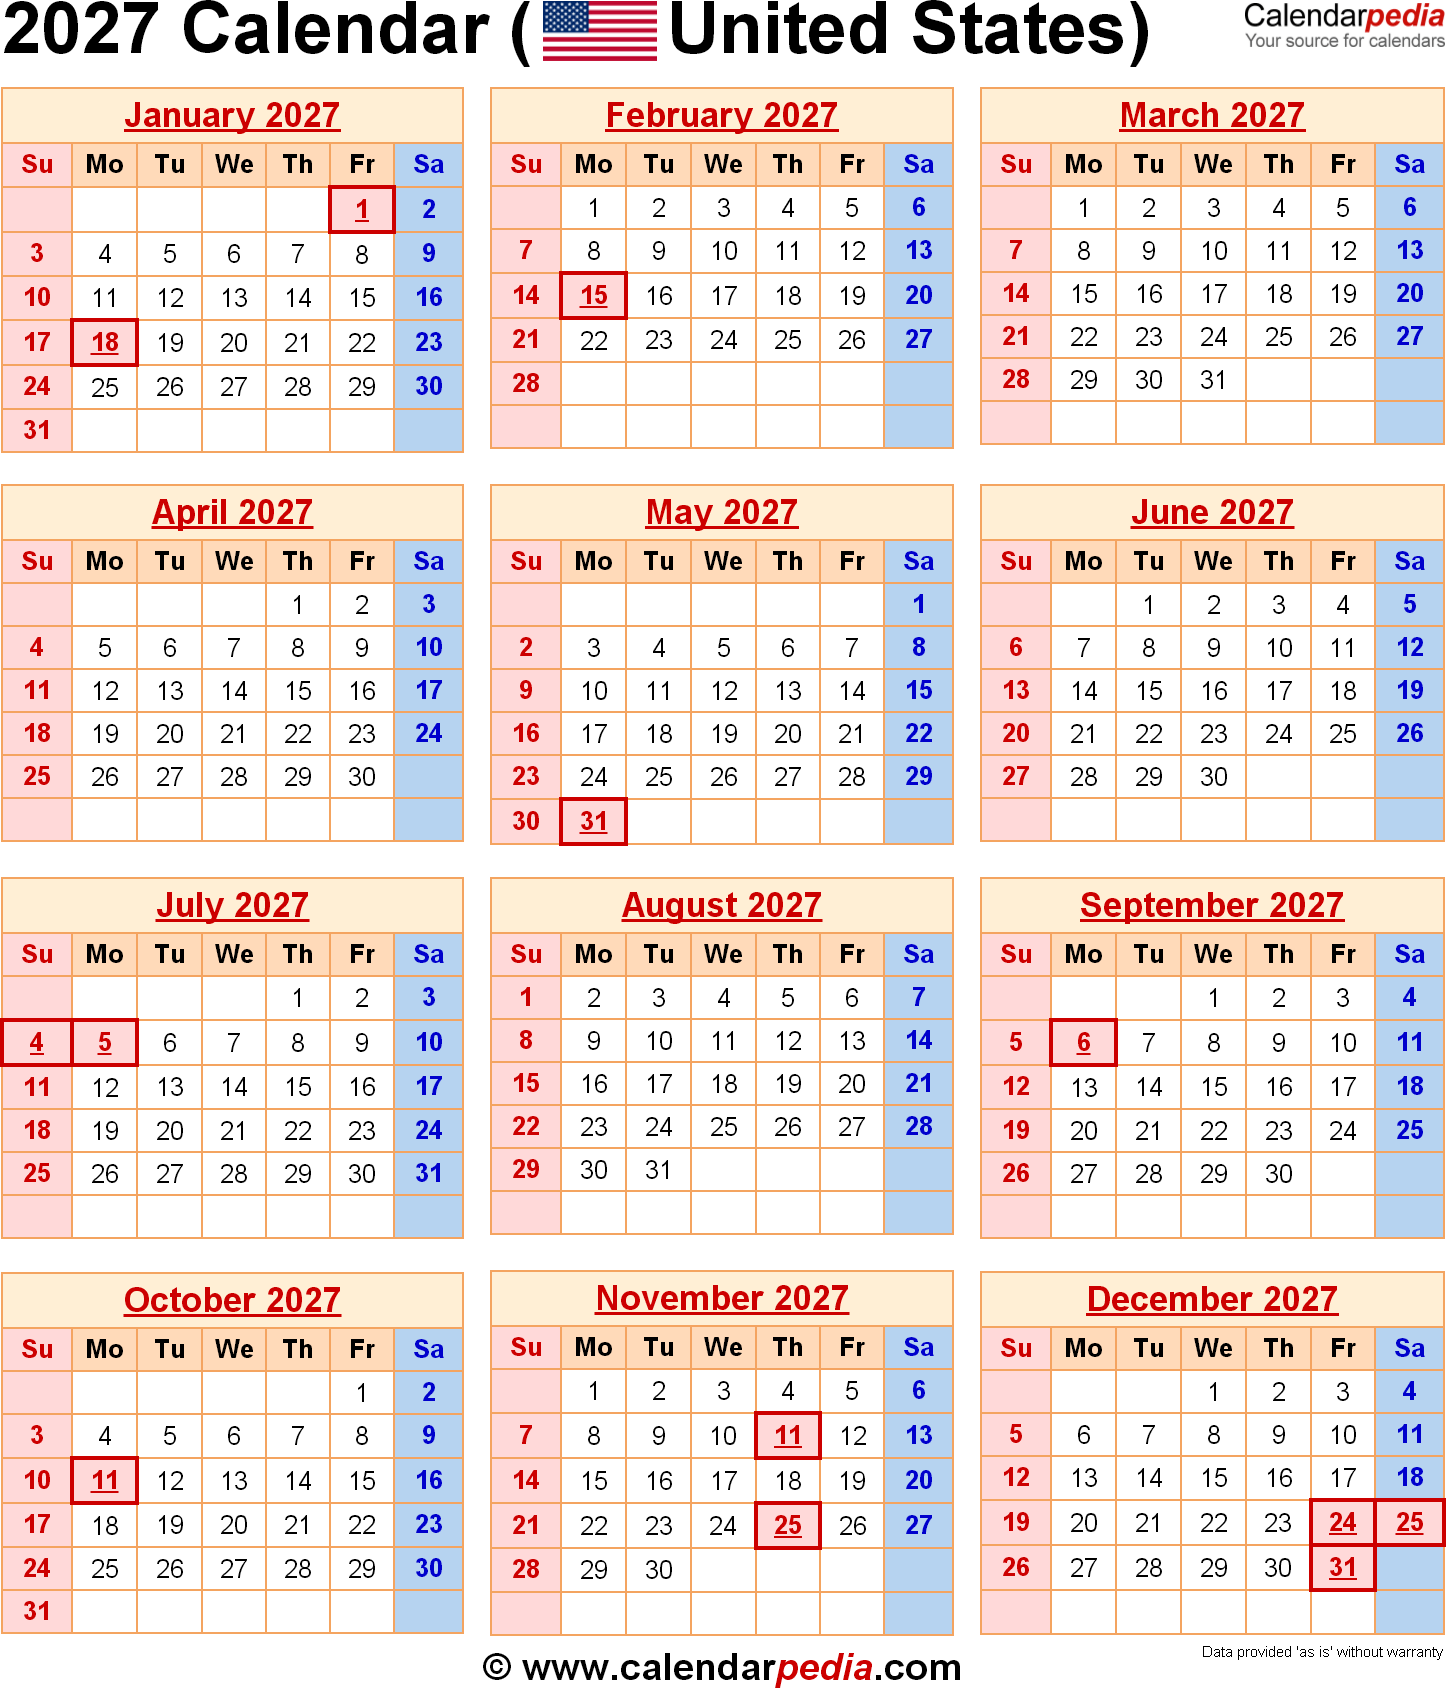 Calendar For Year 2019 Us With 2027 The USA US Federal Holidays